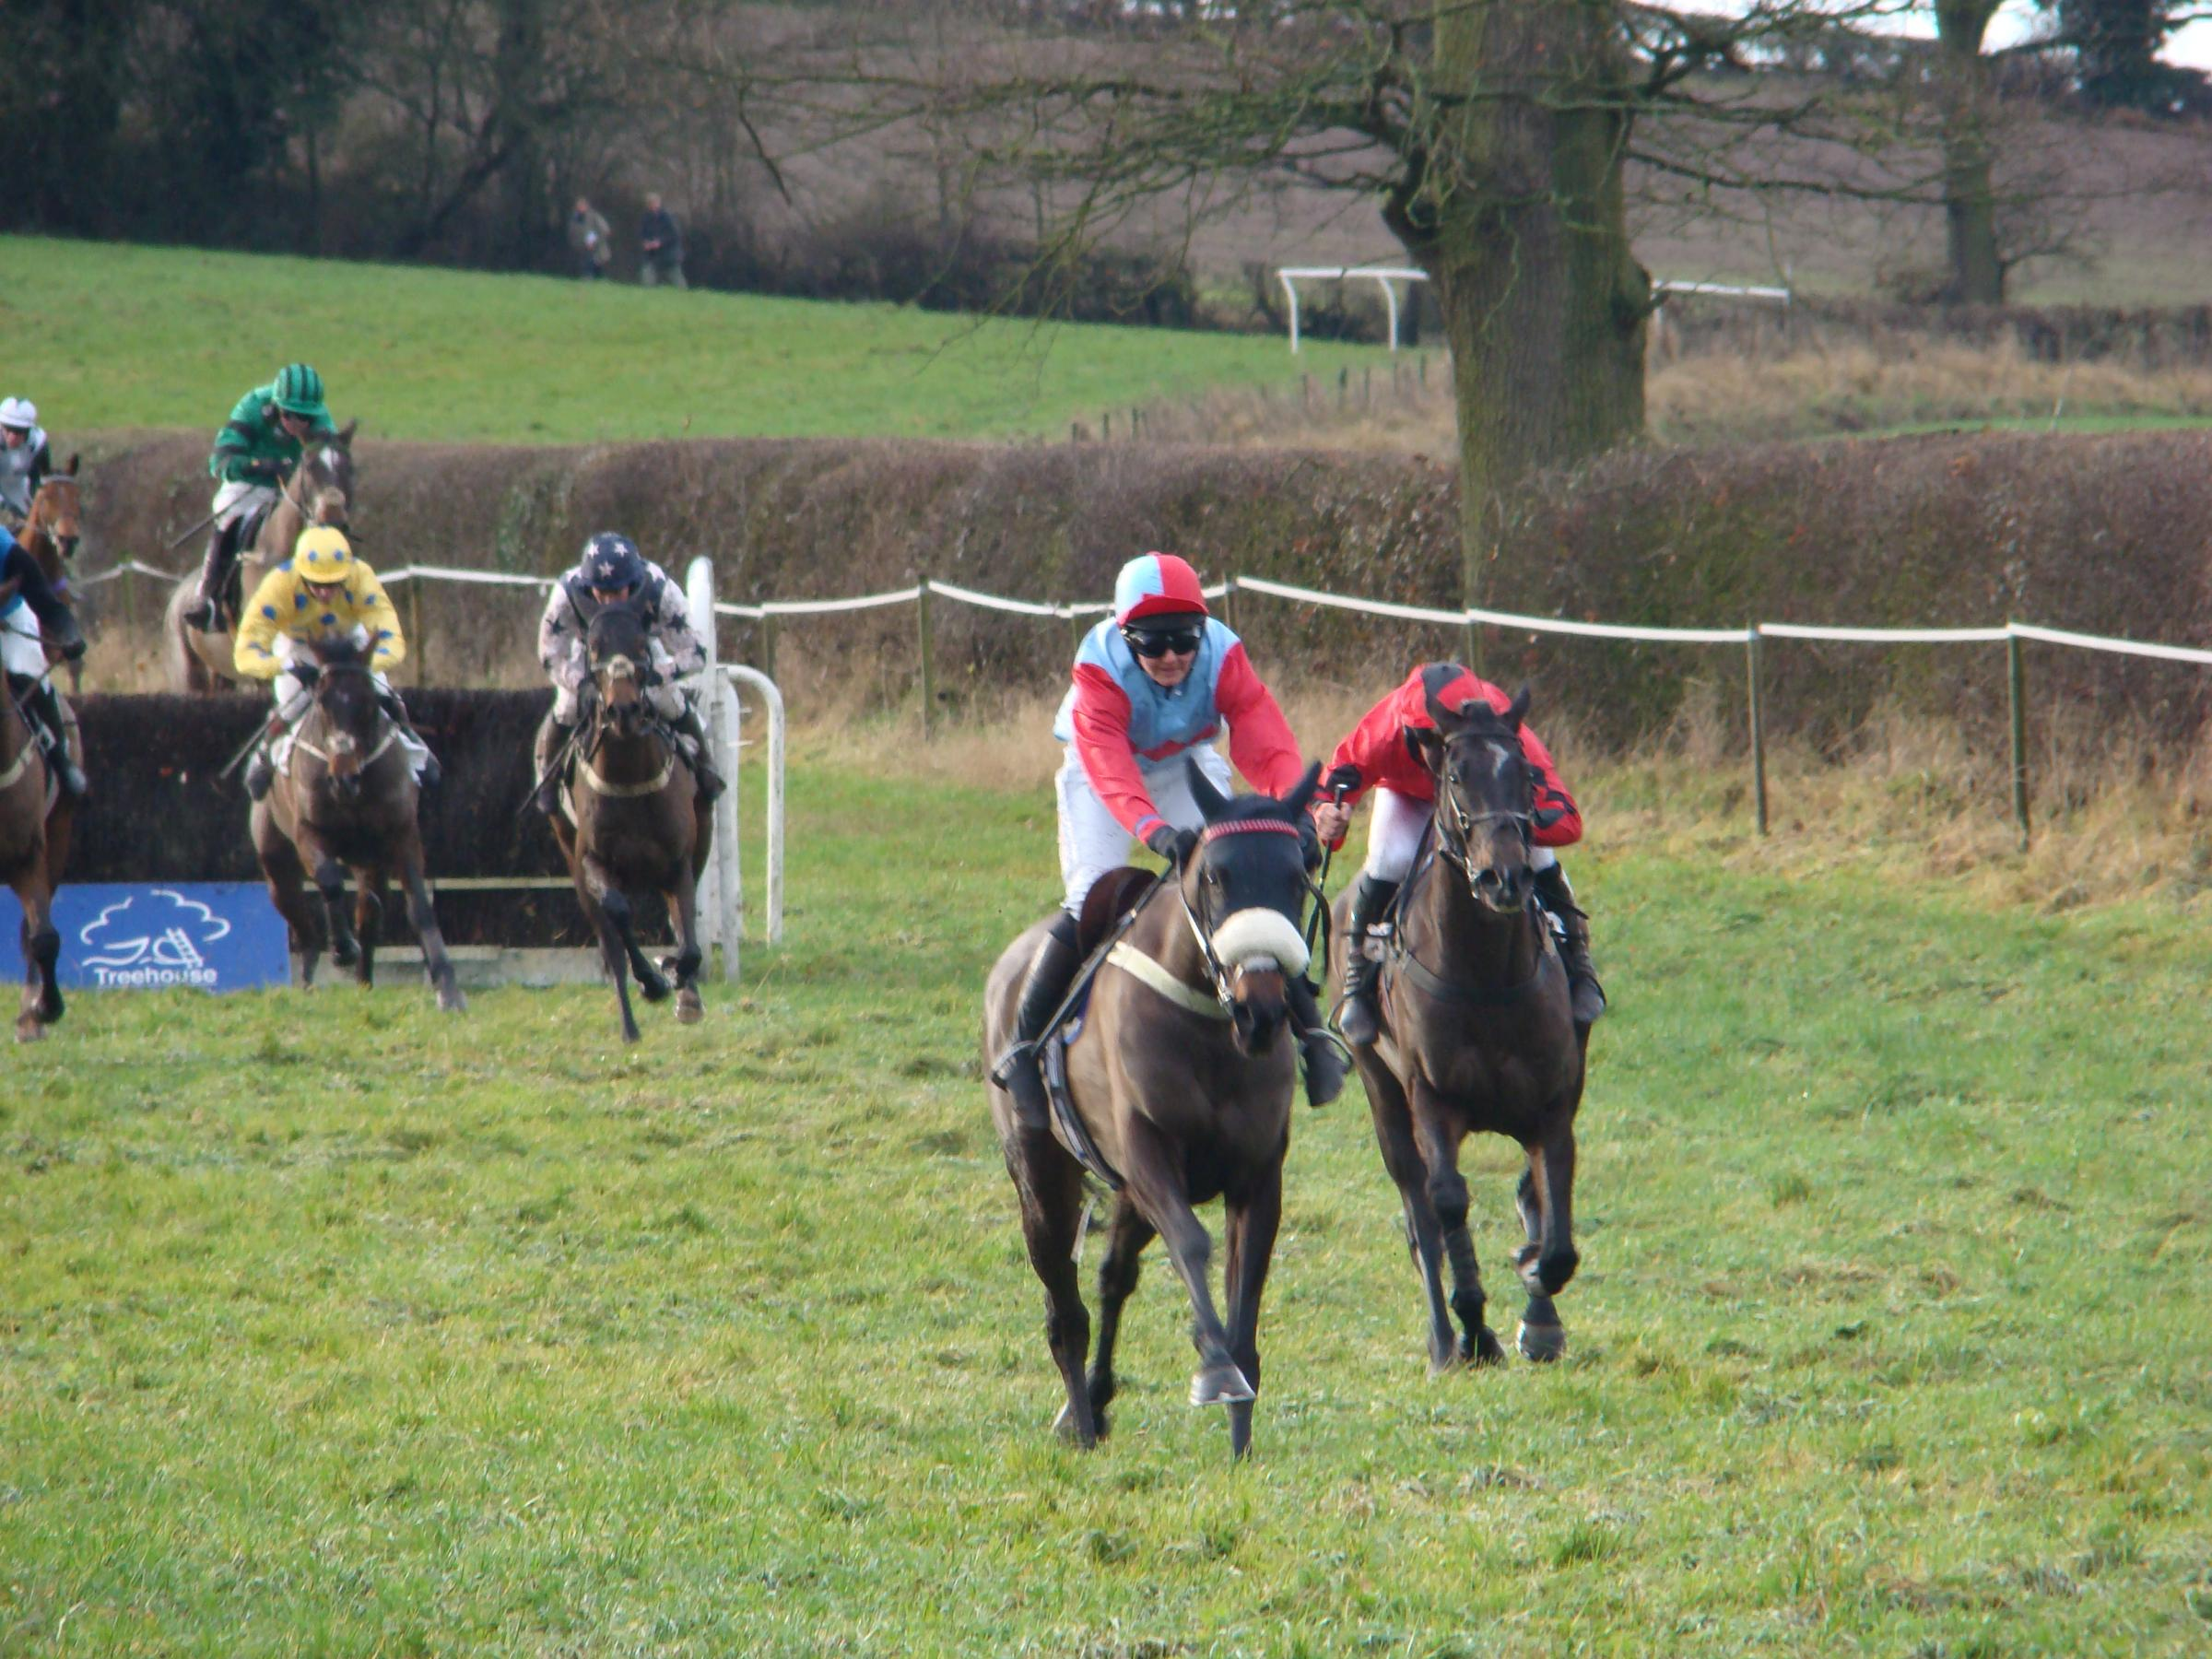 Winners of the first race, Blue et Or and jockey Hannah Lewis, lead Champione as they race towards the last